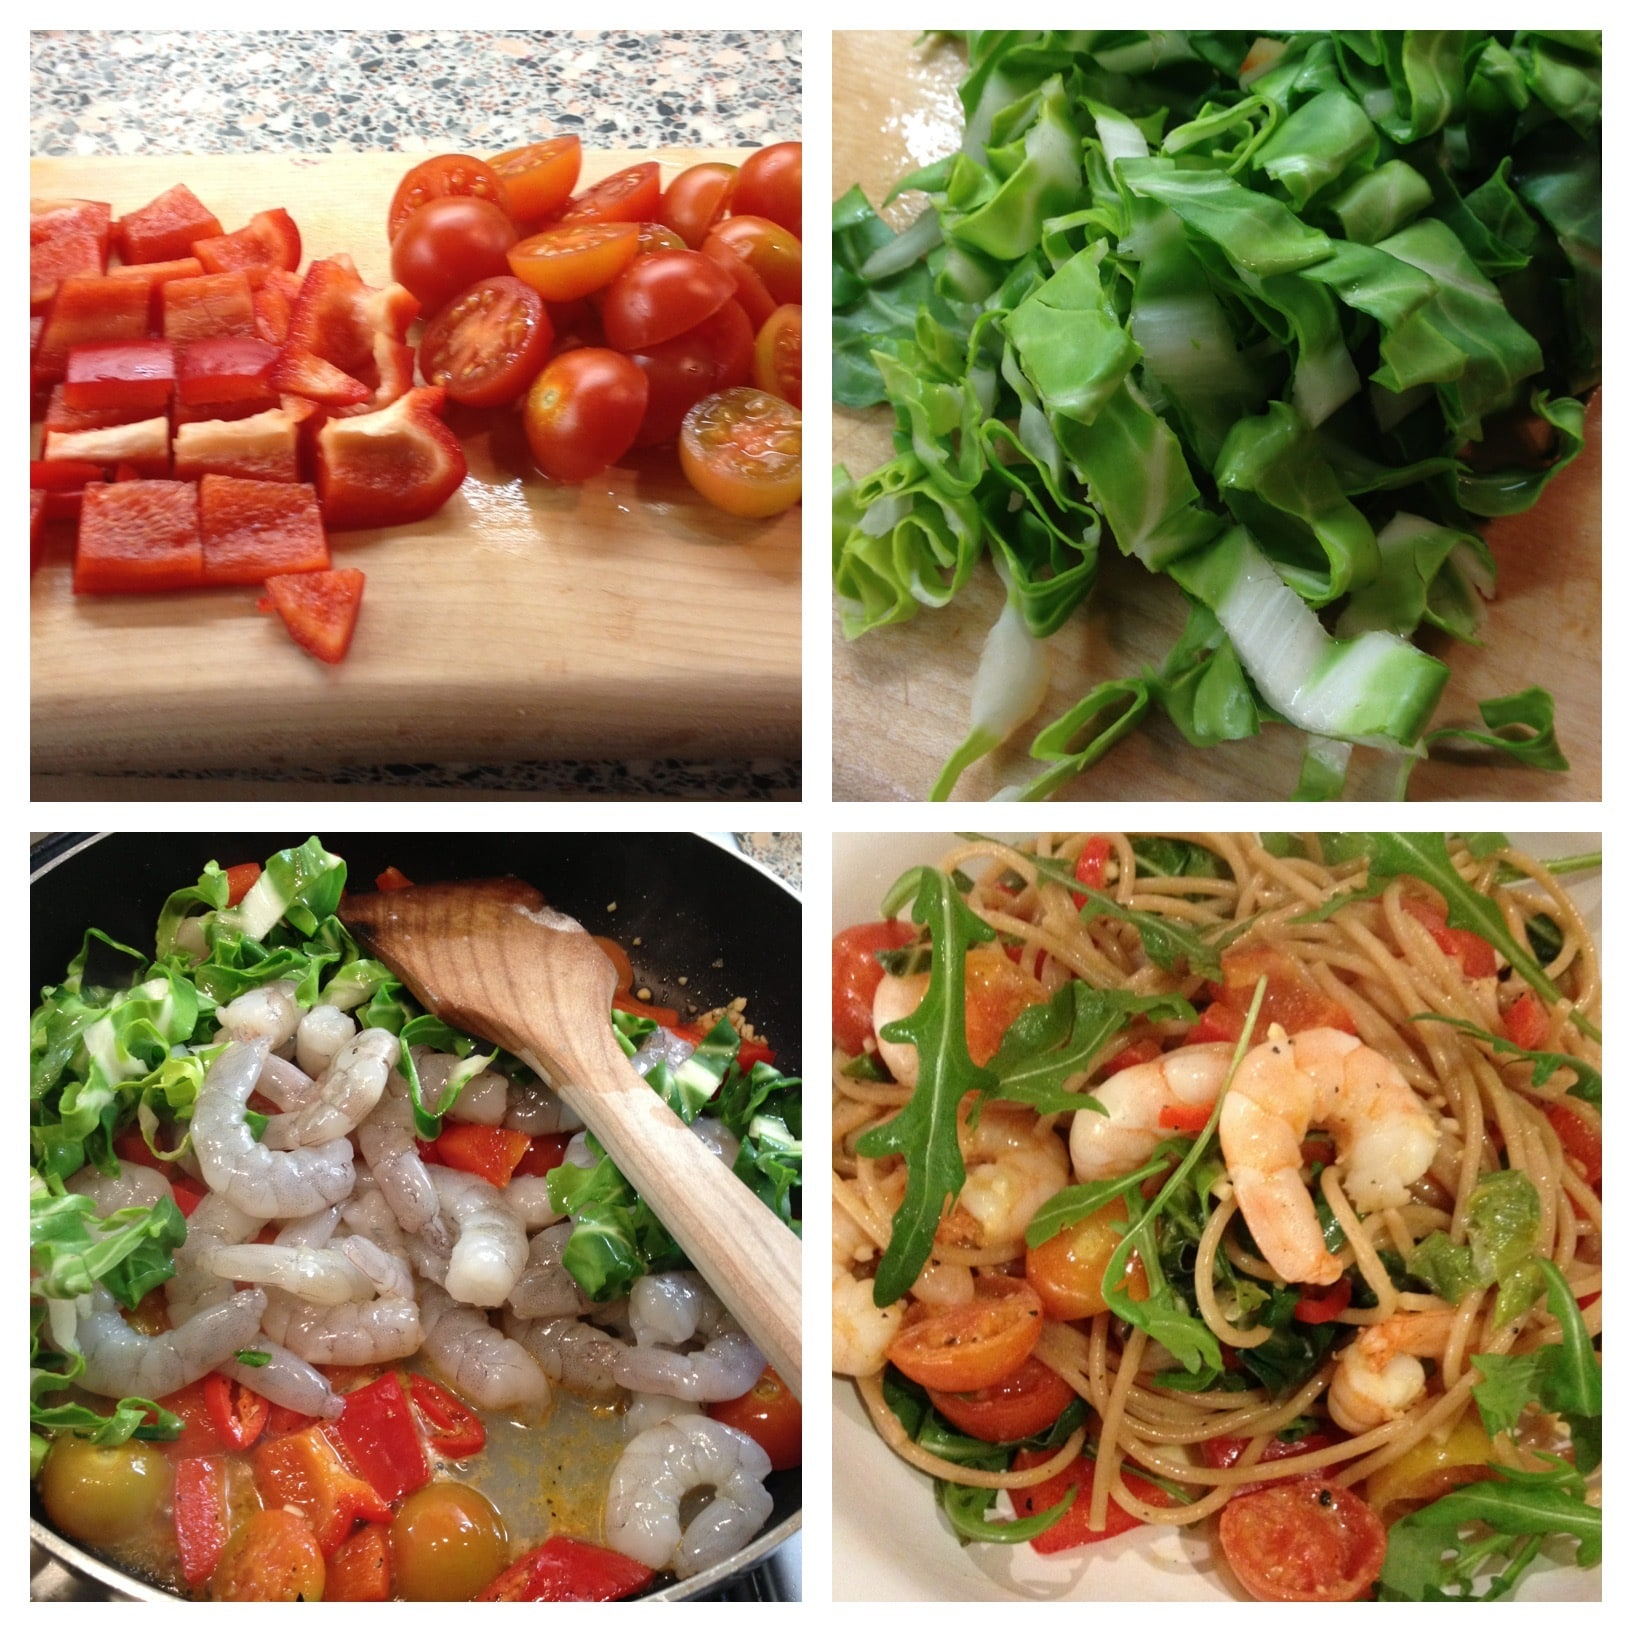 King Prawn & Cherry Tomato Spaghetti with Chilli & Garlic